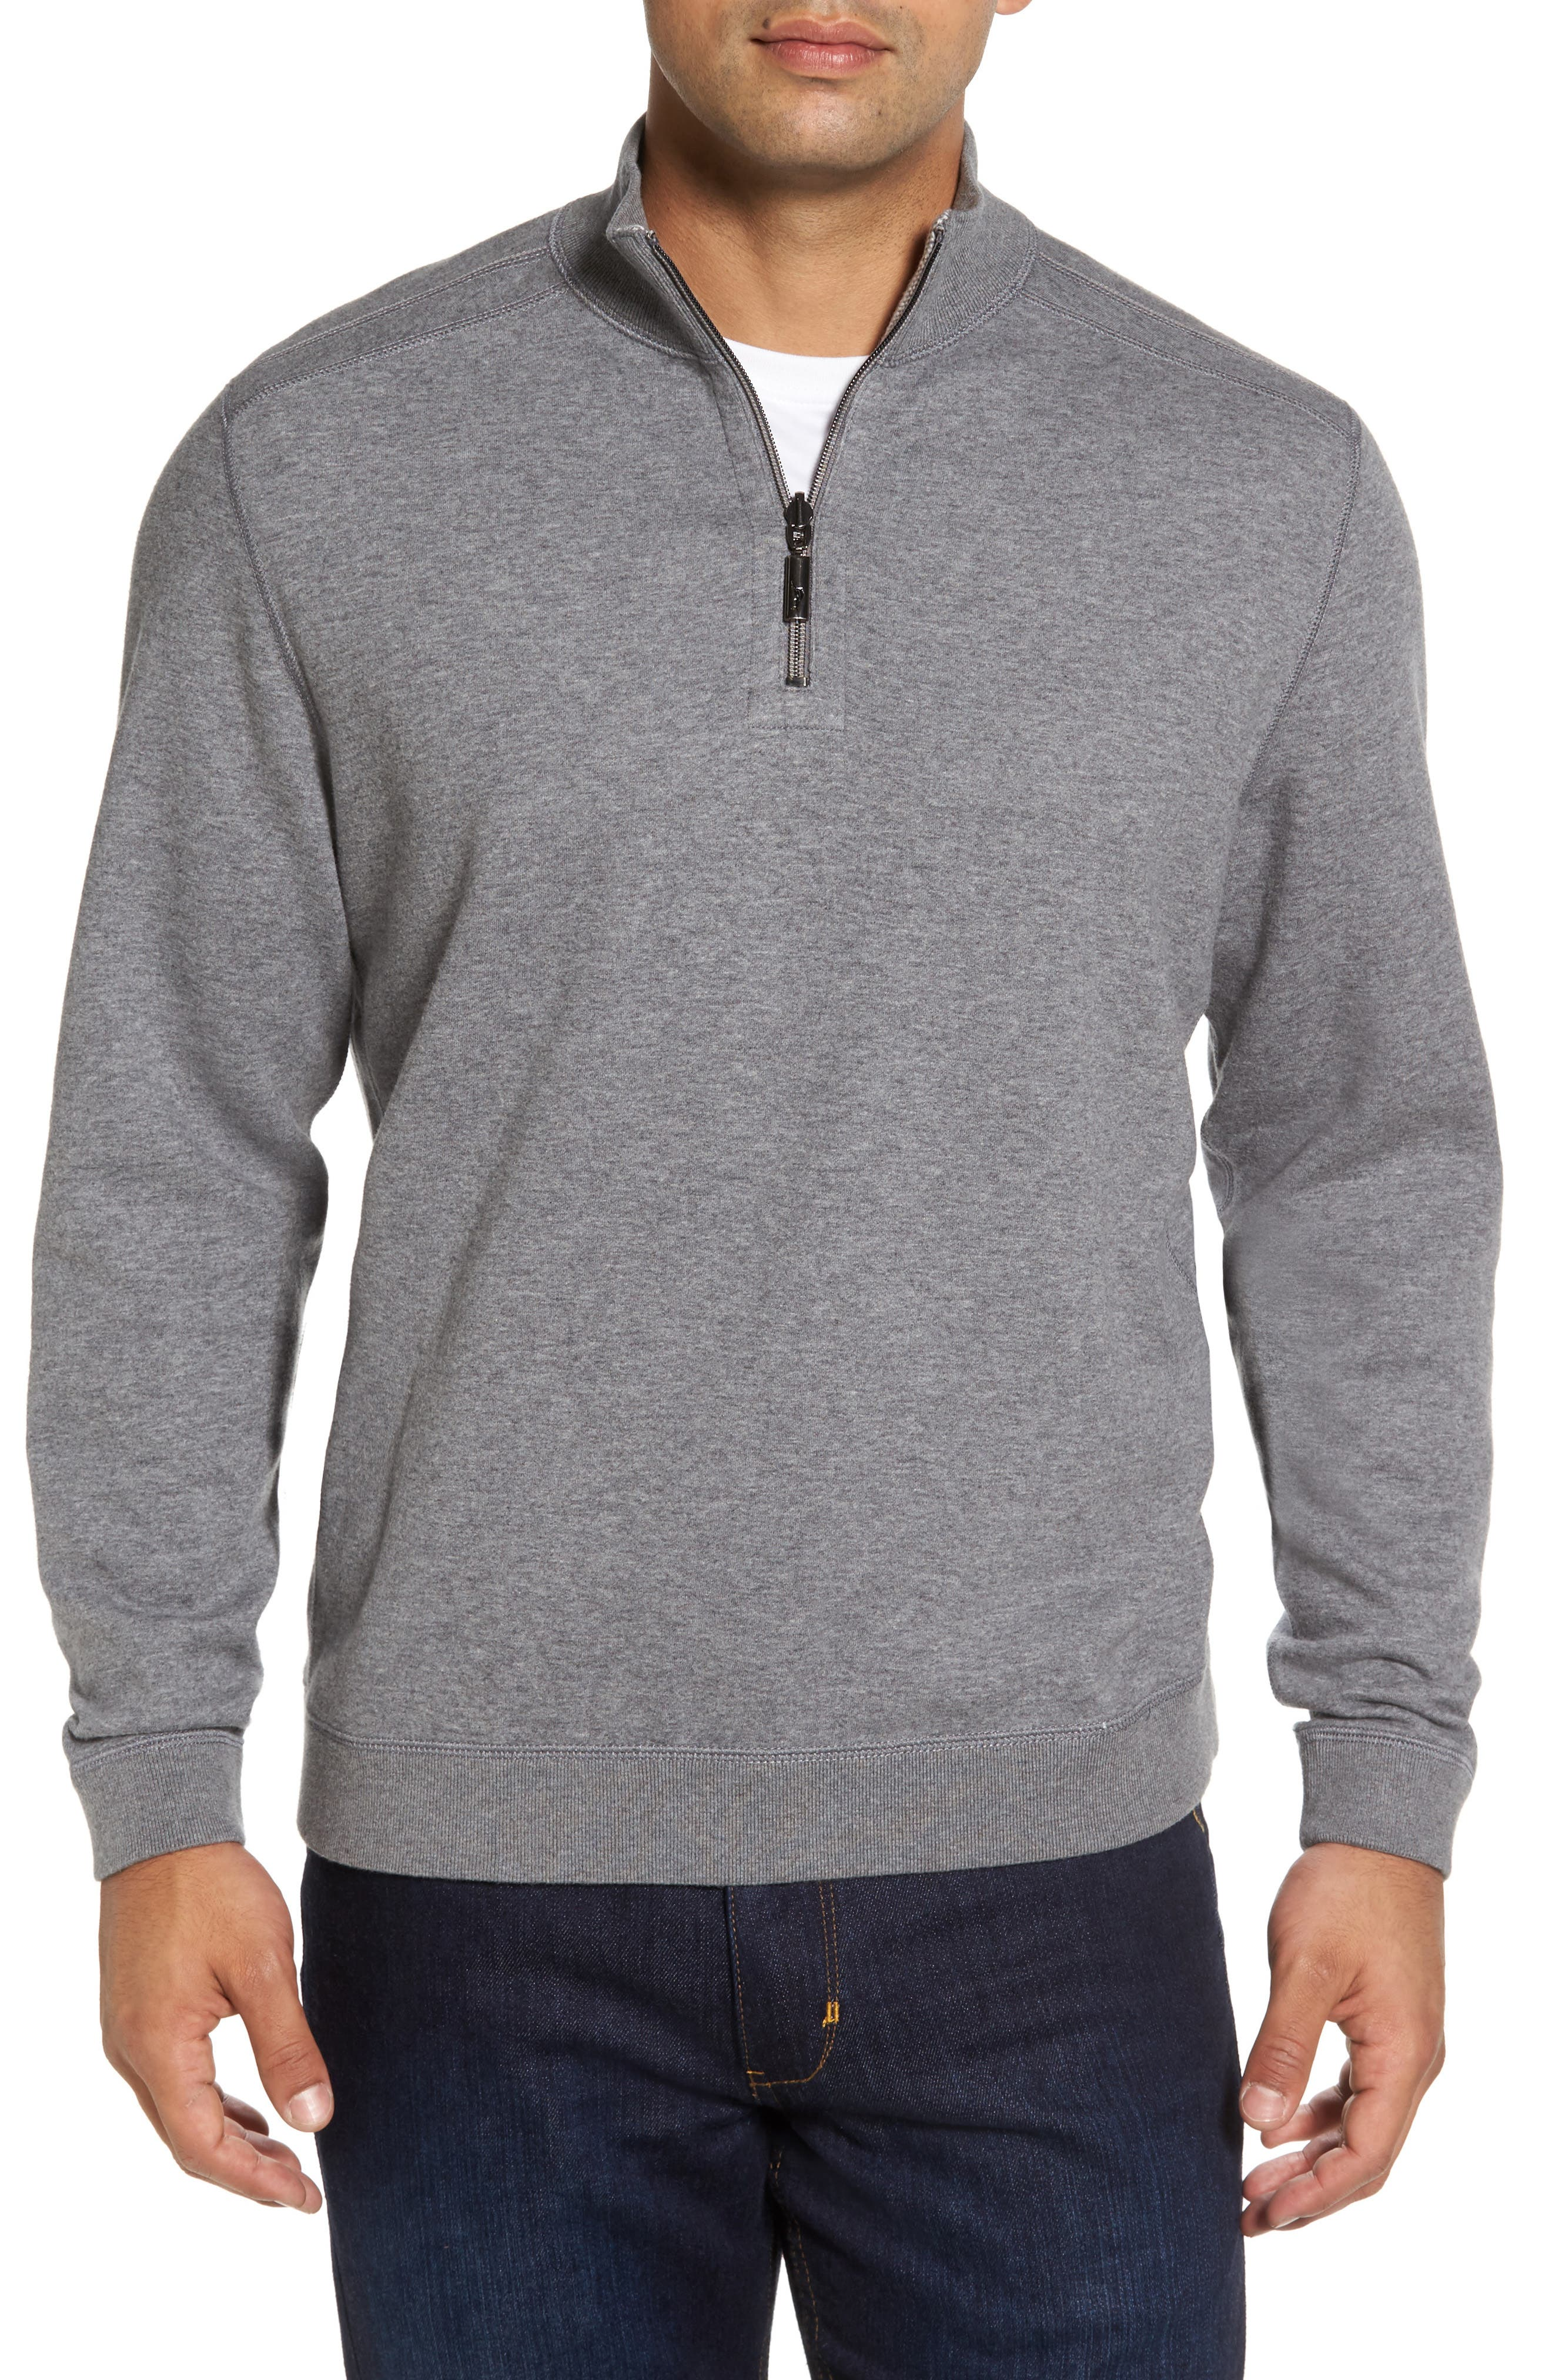 Main Image - Tommy Bahama Flip Drive Quarter Zip Pullover